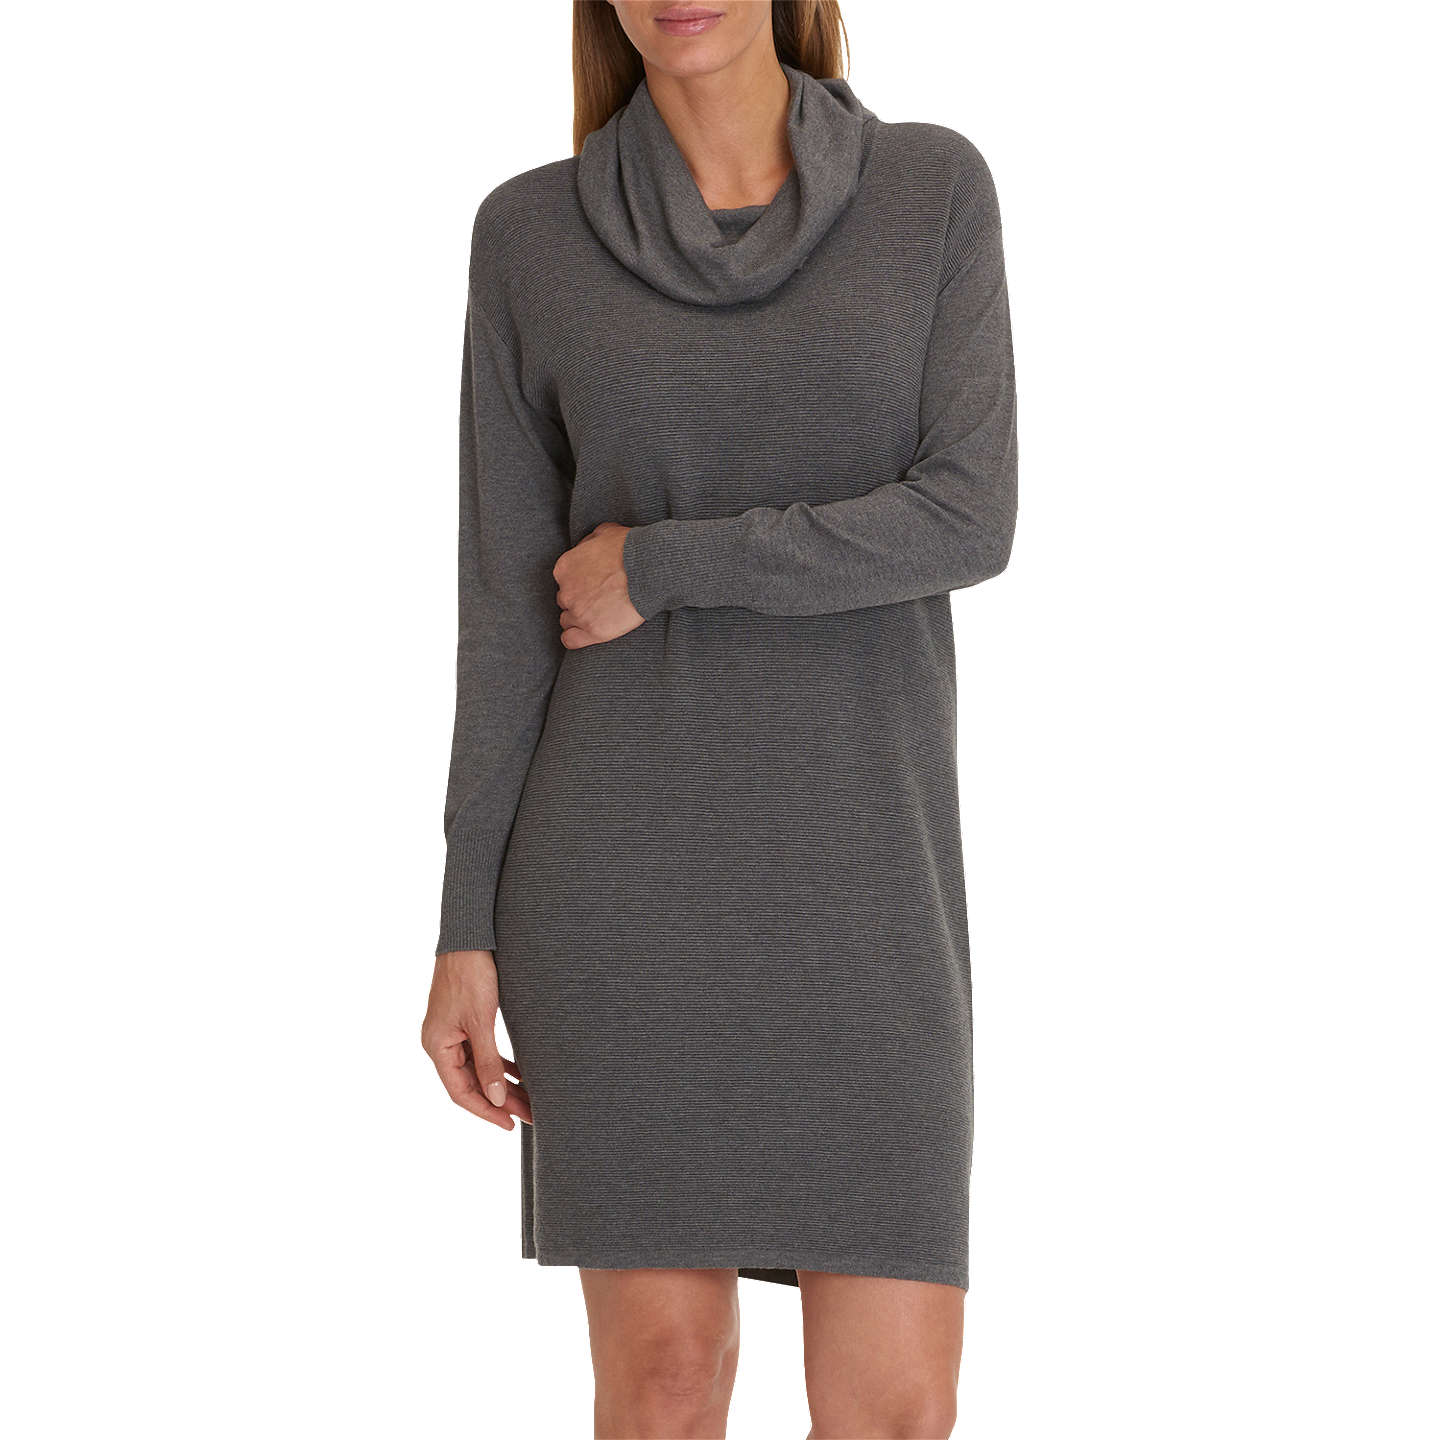 BuyBetty Barclay Fine Ribbed Knit Dress, Middle Grey Melange, 20 Online at johnlewis.com